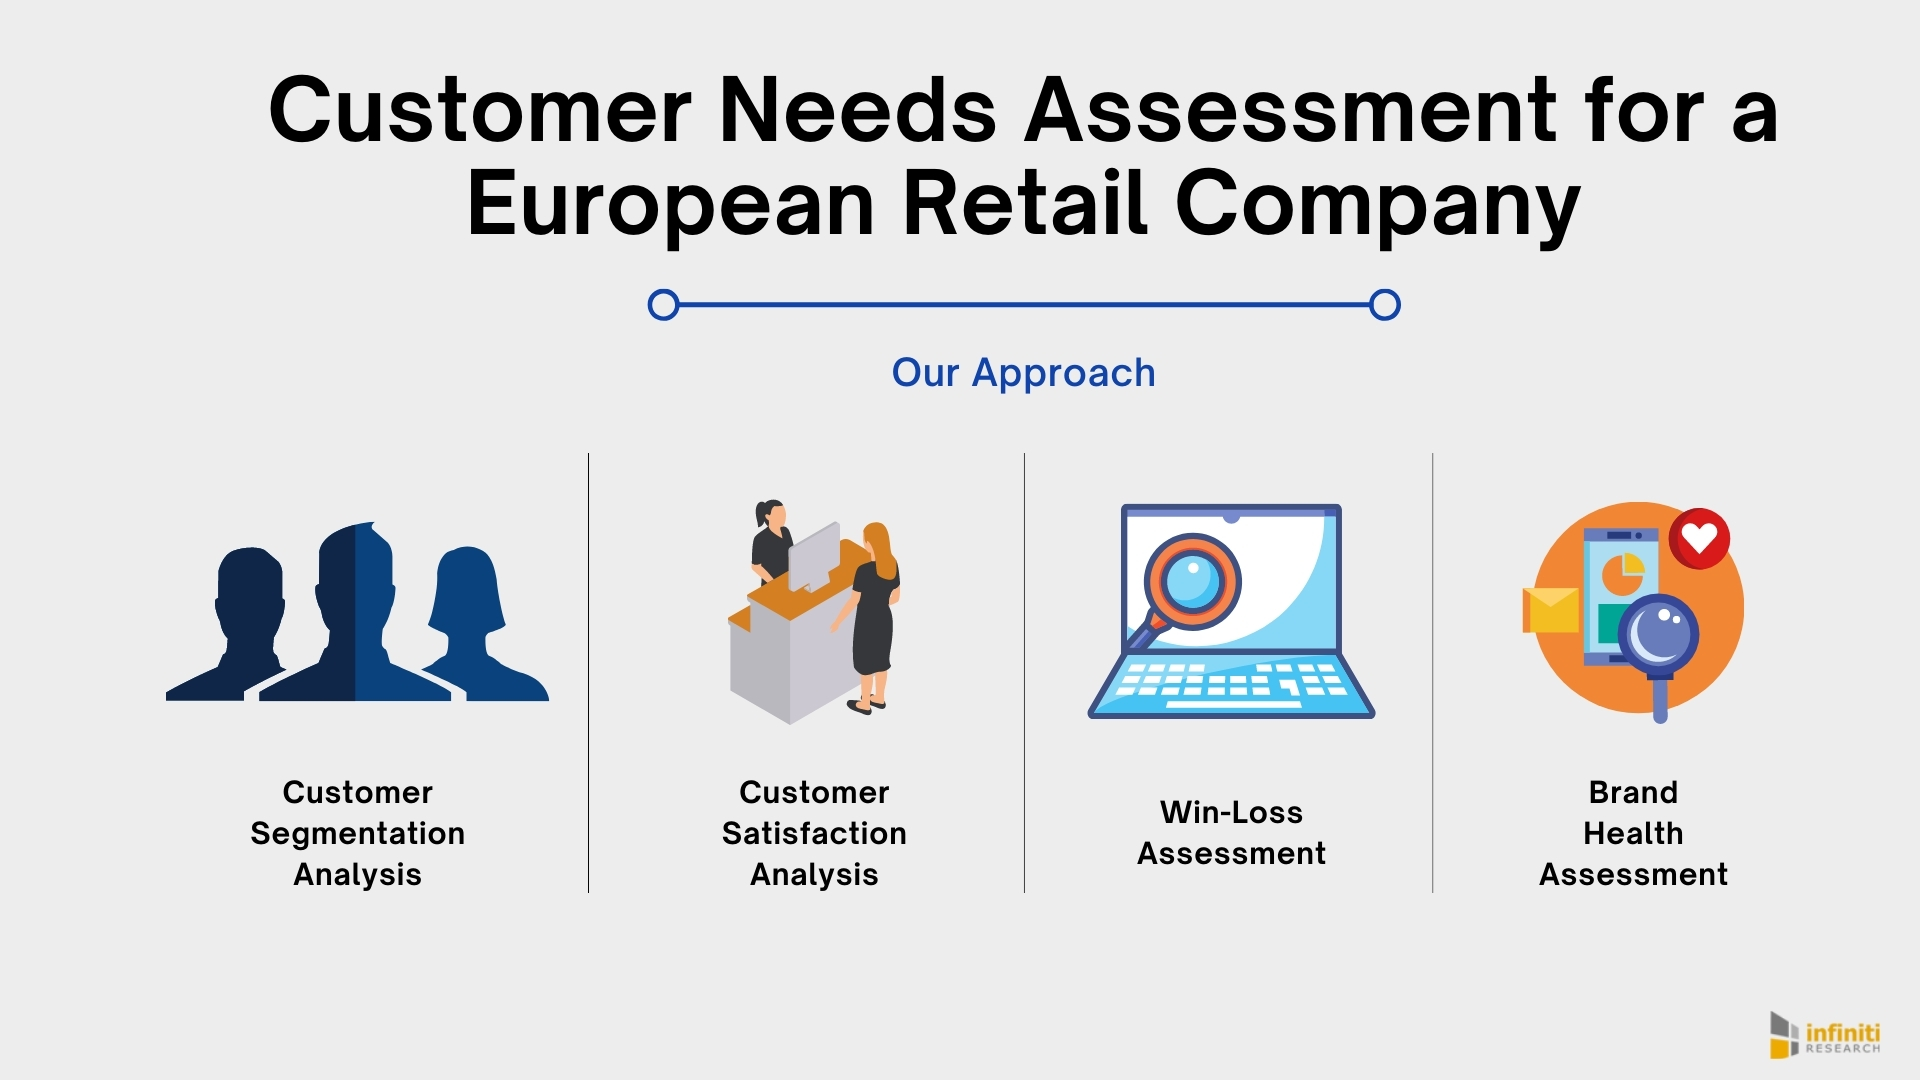 A European Retail Company Understand Customers Needs And Reduces Churn Rate With Customer Needs Assessment Solutions Infiniti S Recent Client Engagement Business Wire It might seem self evident that the need to learn should underpin. customer needs assessment solutions